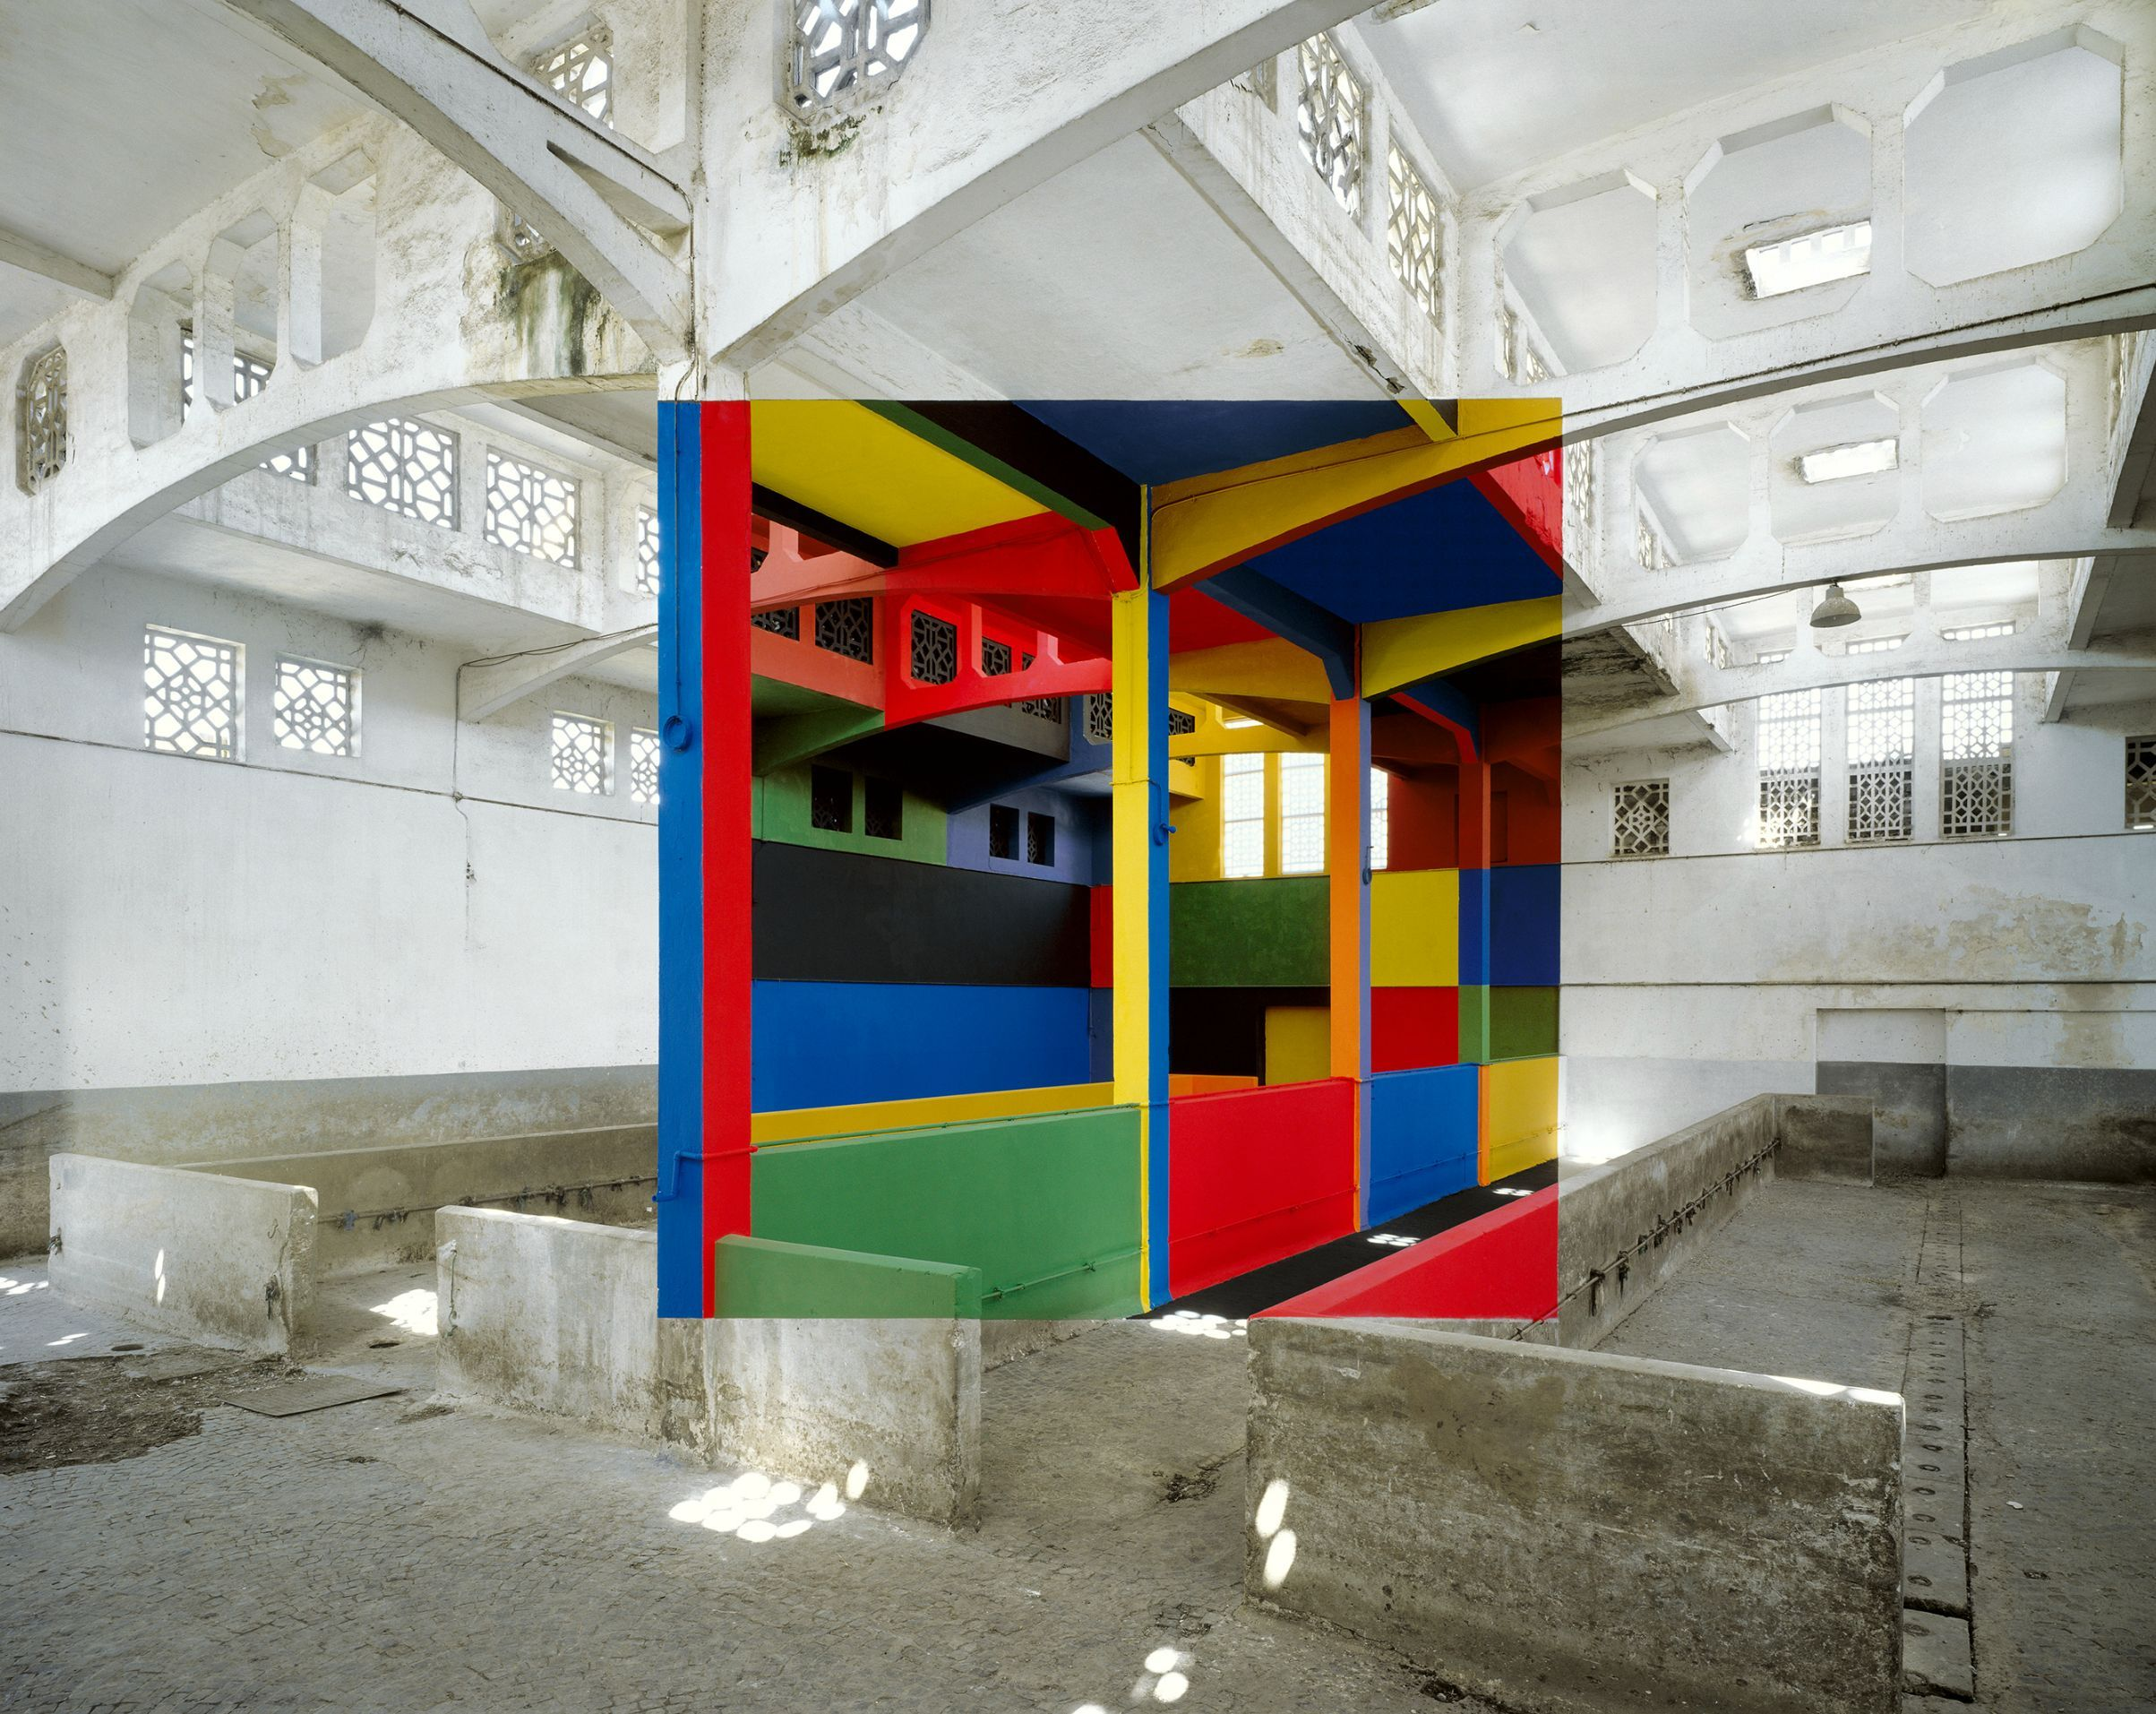 The work of georges rousse a french artist who has been creating his painted perspective installations in abandoned and soon to be demolished buildings